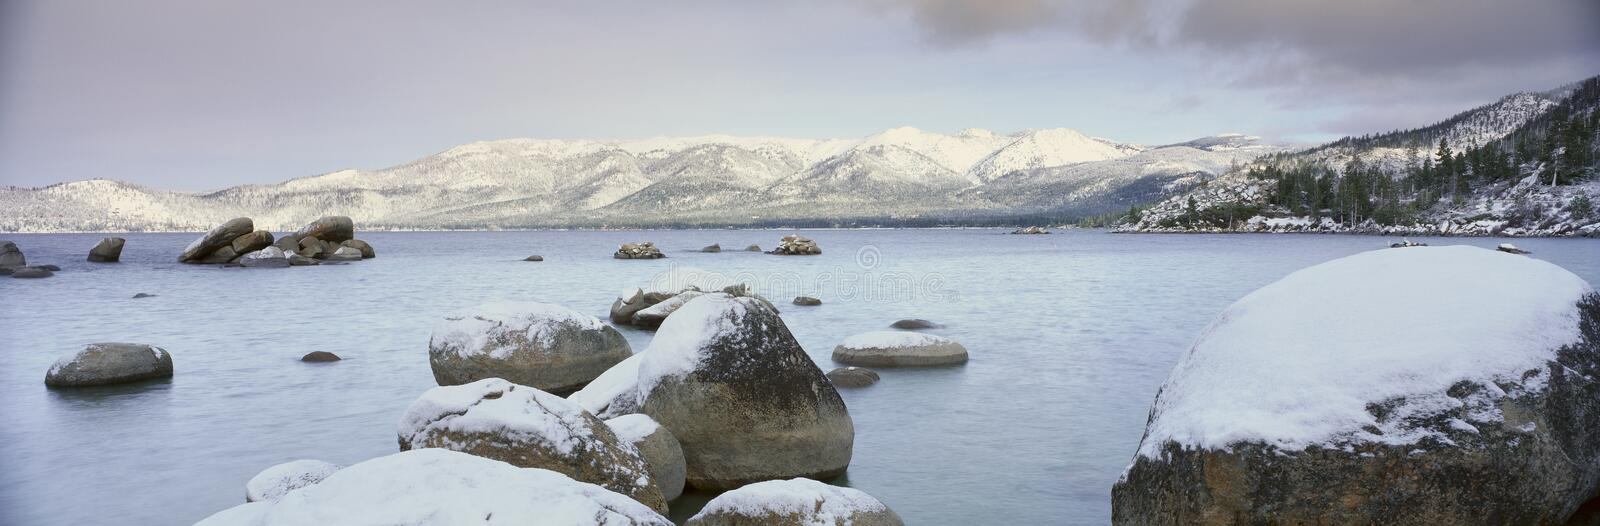 Download Lake Tahoe in Wintertime, stock image. Image of nevada - 26262483